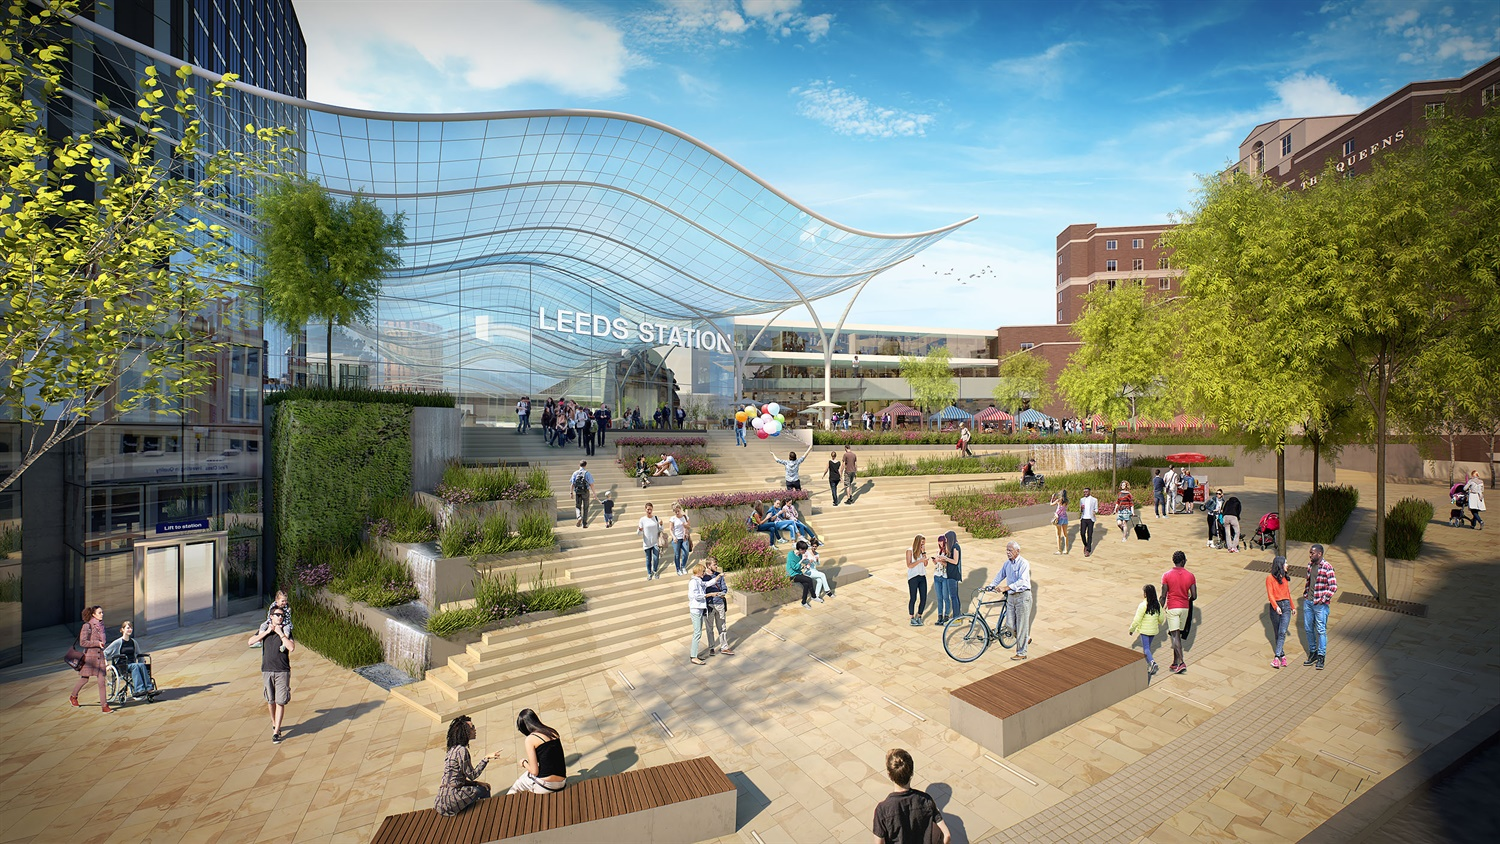 Leeds South Bank plans rubber-stamped, finalising £500m transformation of train station